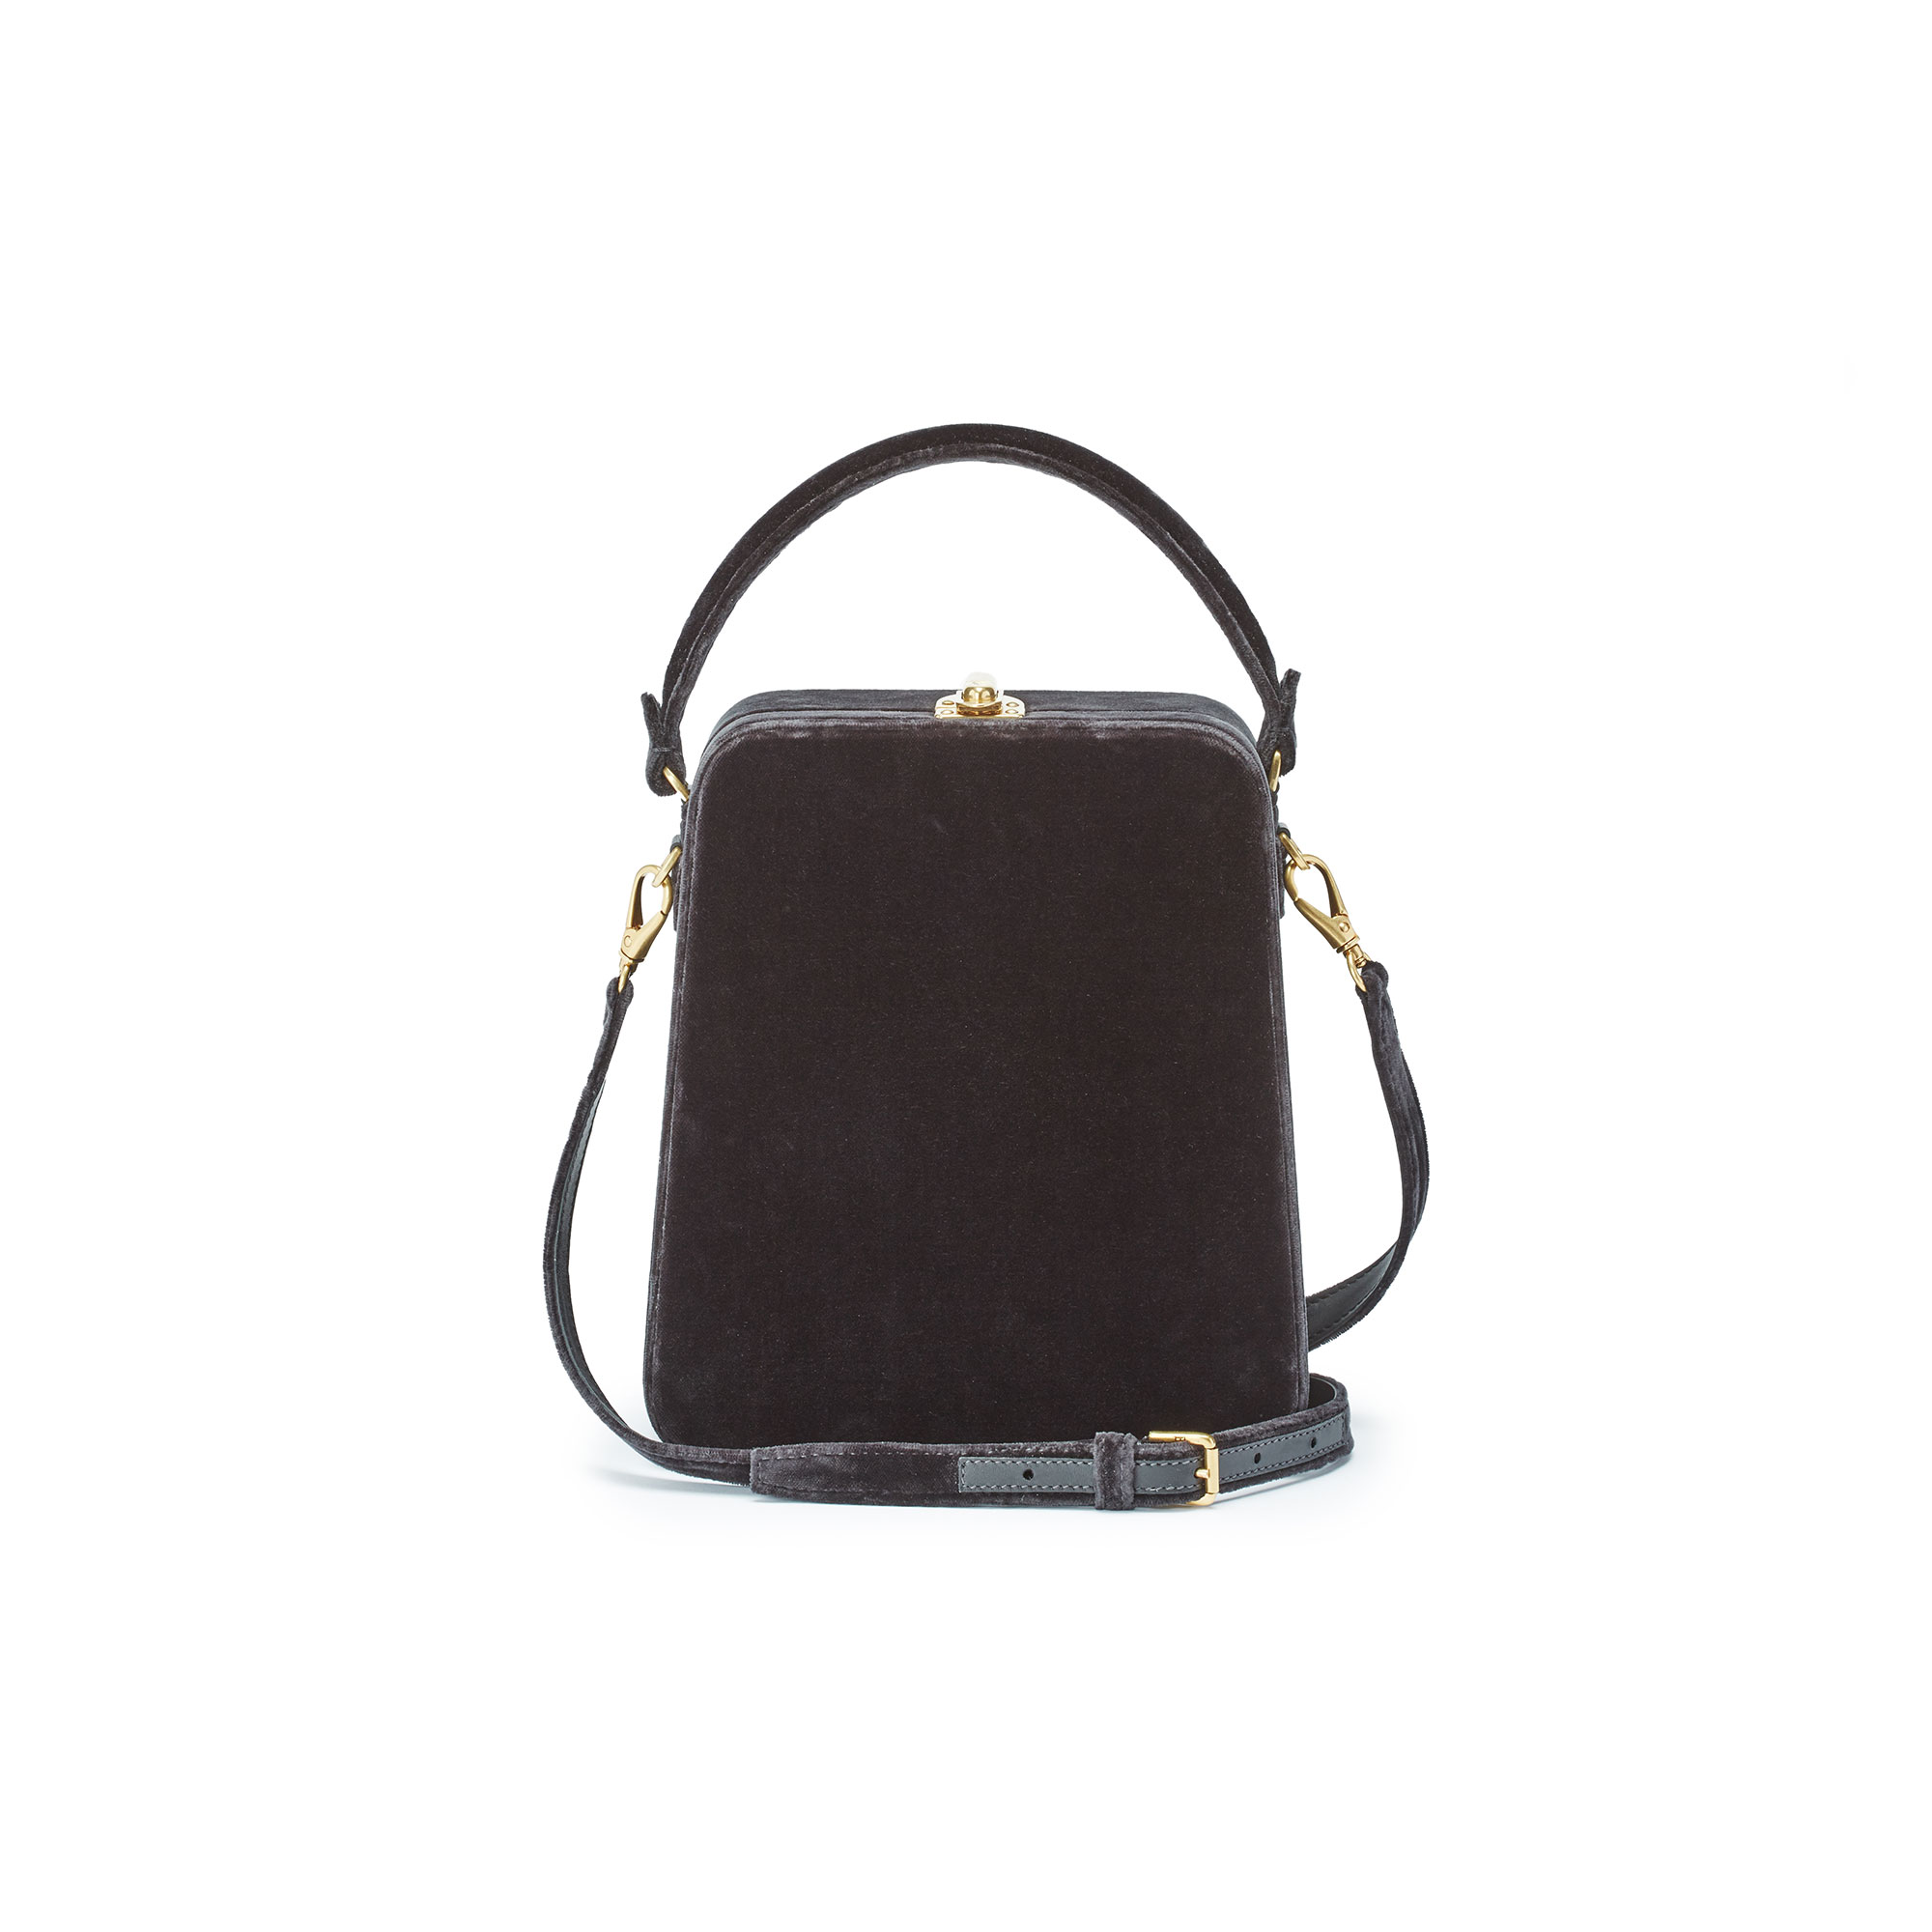 Tall-Bertoncina-charcoal-gray-velvet-bag-Bertoni-1949